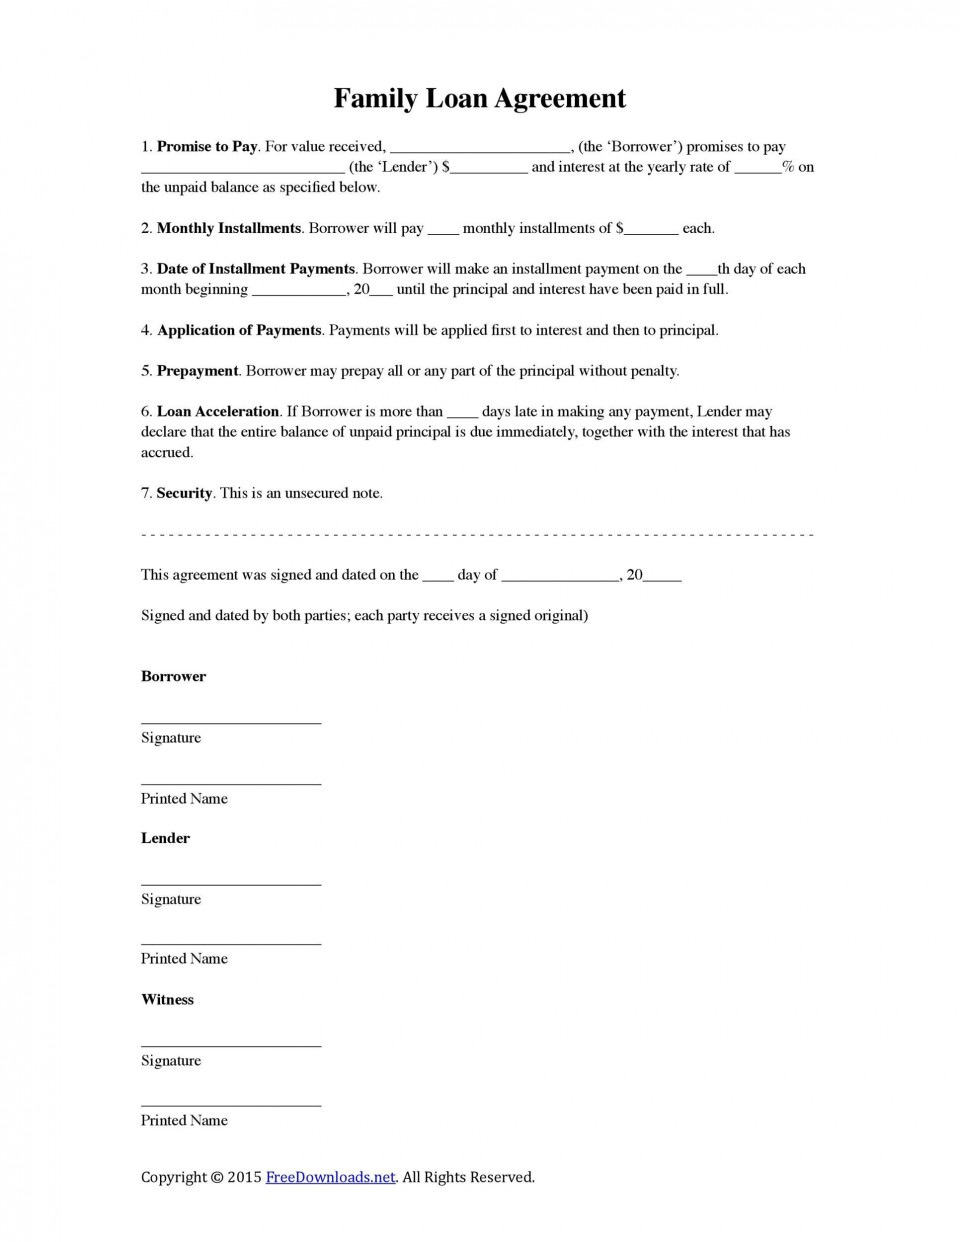 009 Stupendou Family Loan Agreement Template Uk Free High Definition 960